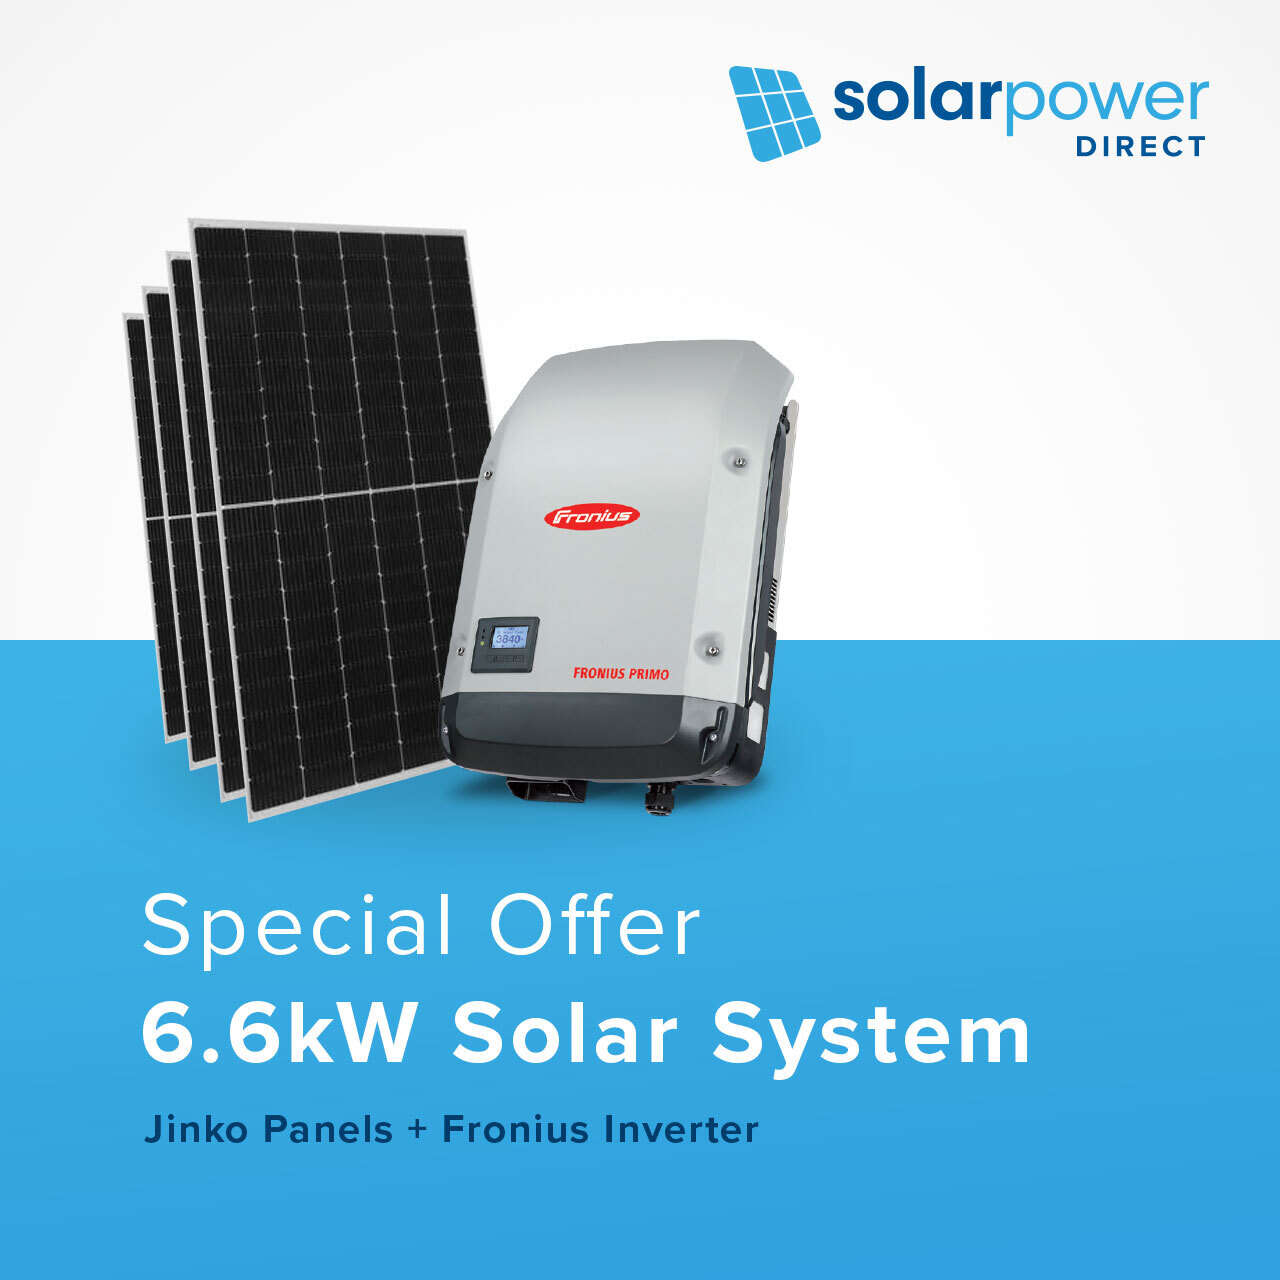 6.6kW Solar System for $3,990